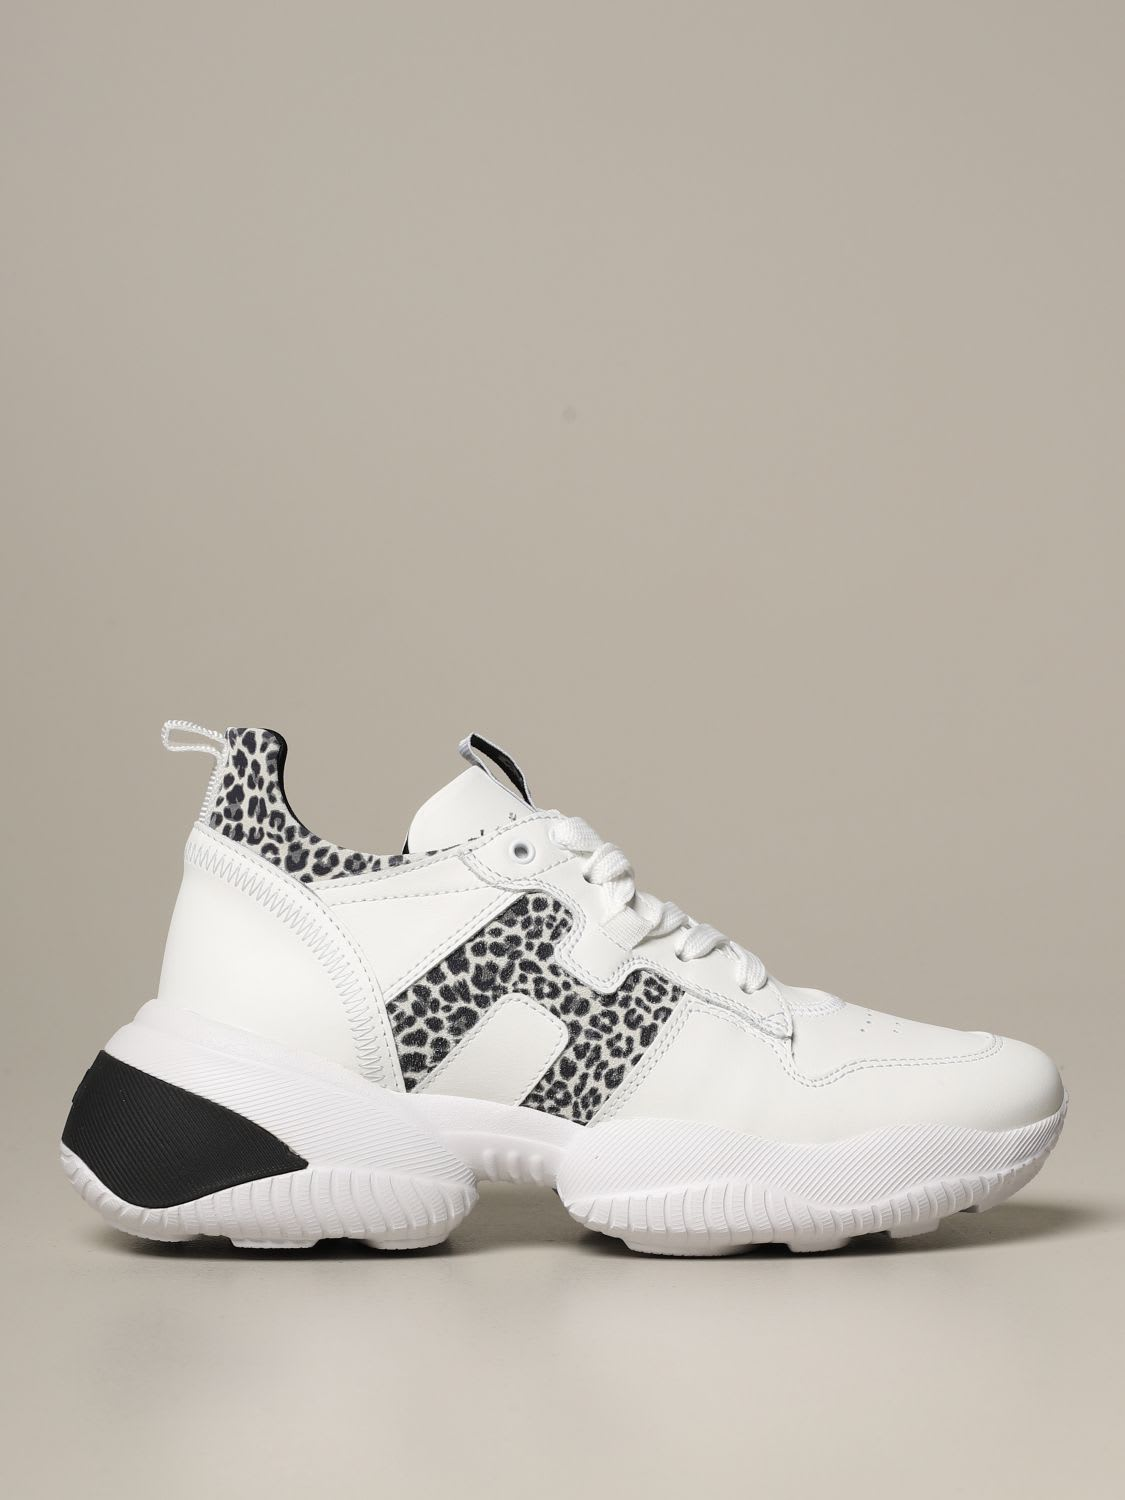 Hogan Sneakers Interaction Hogan X Giglio.com Sneakers In Animalier Leather And Suede